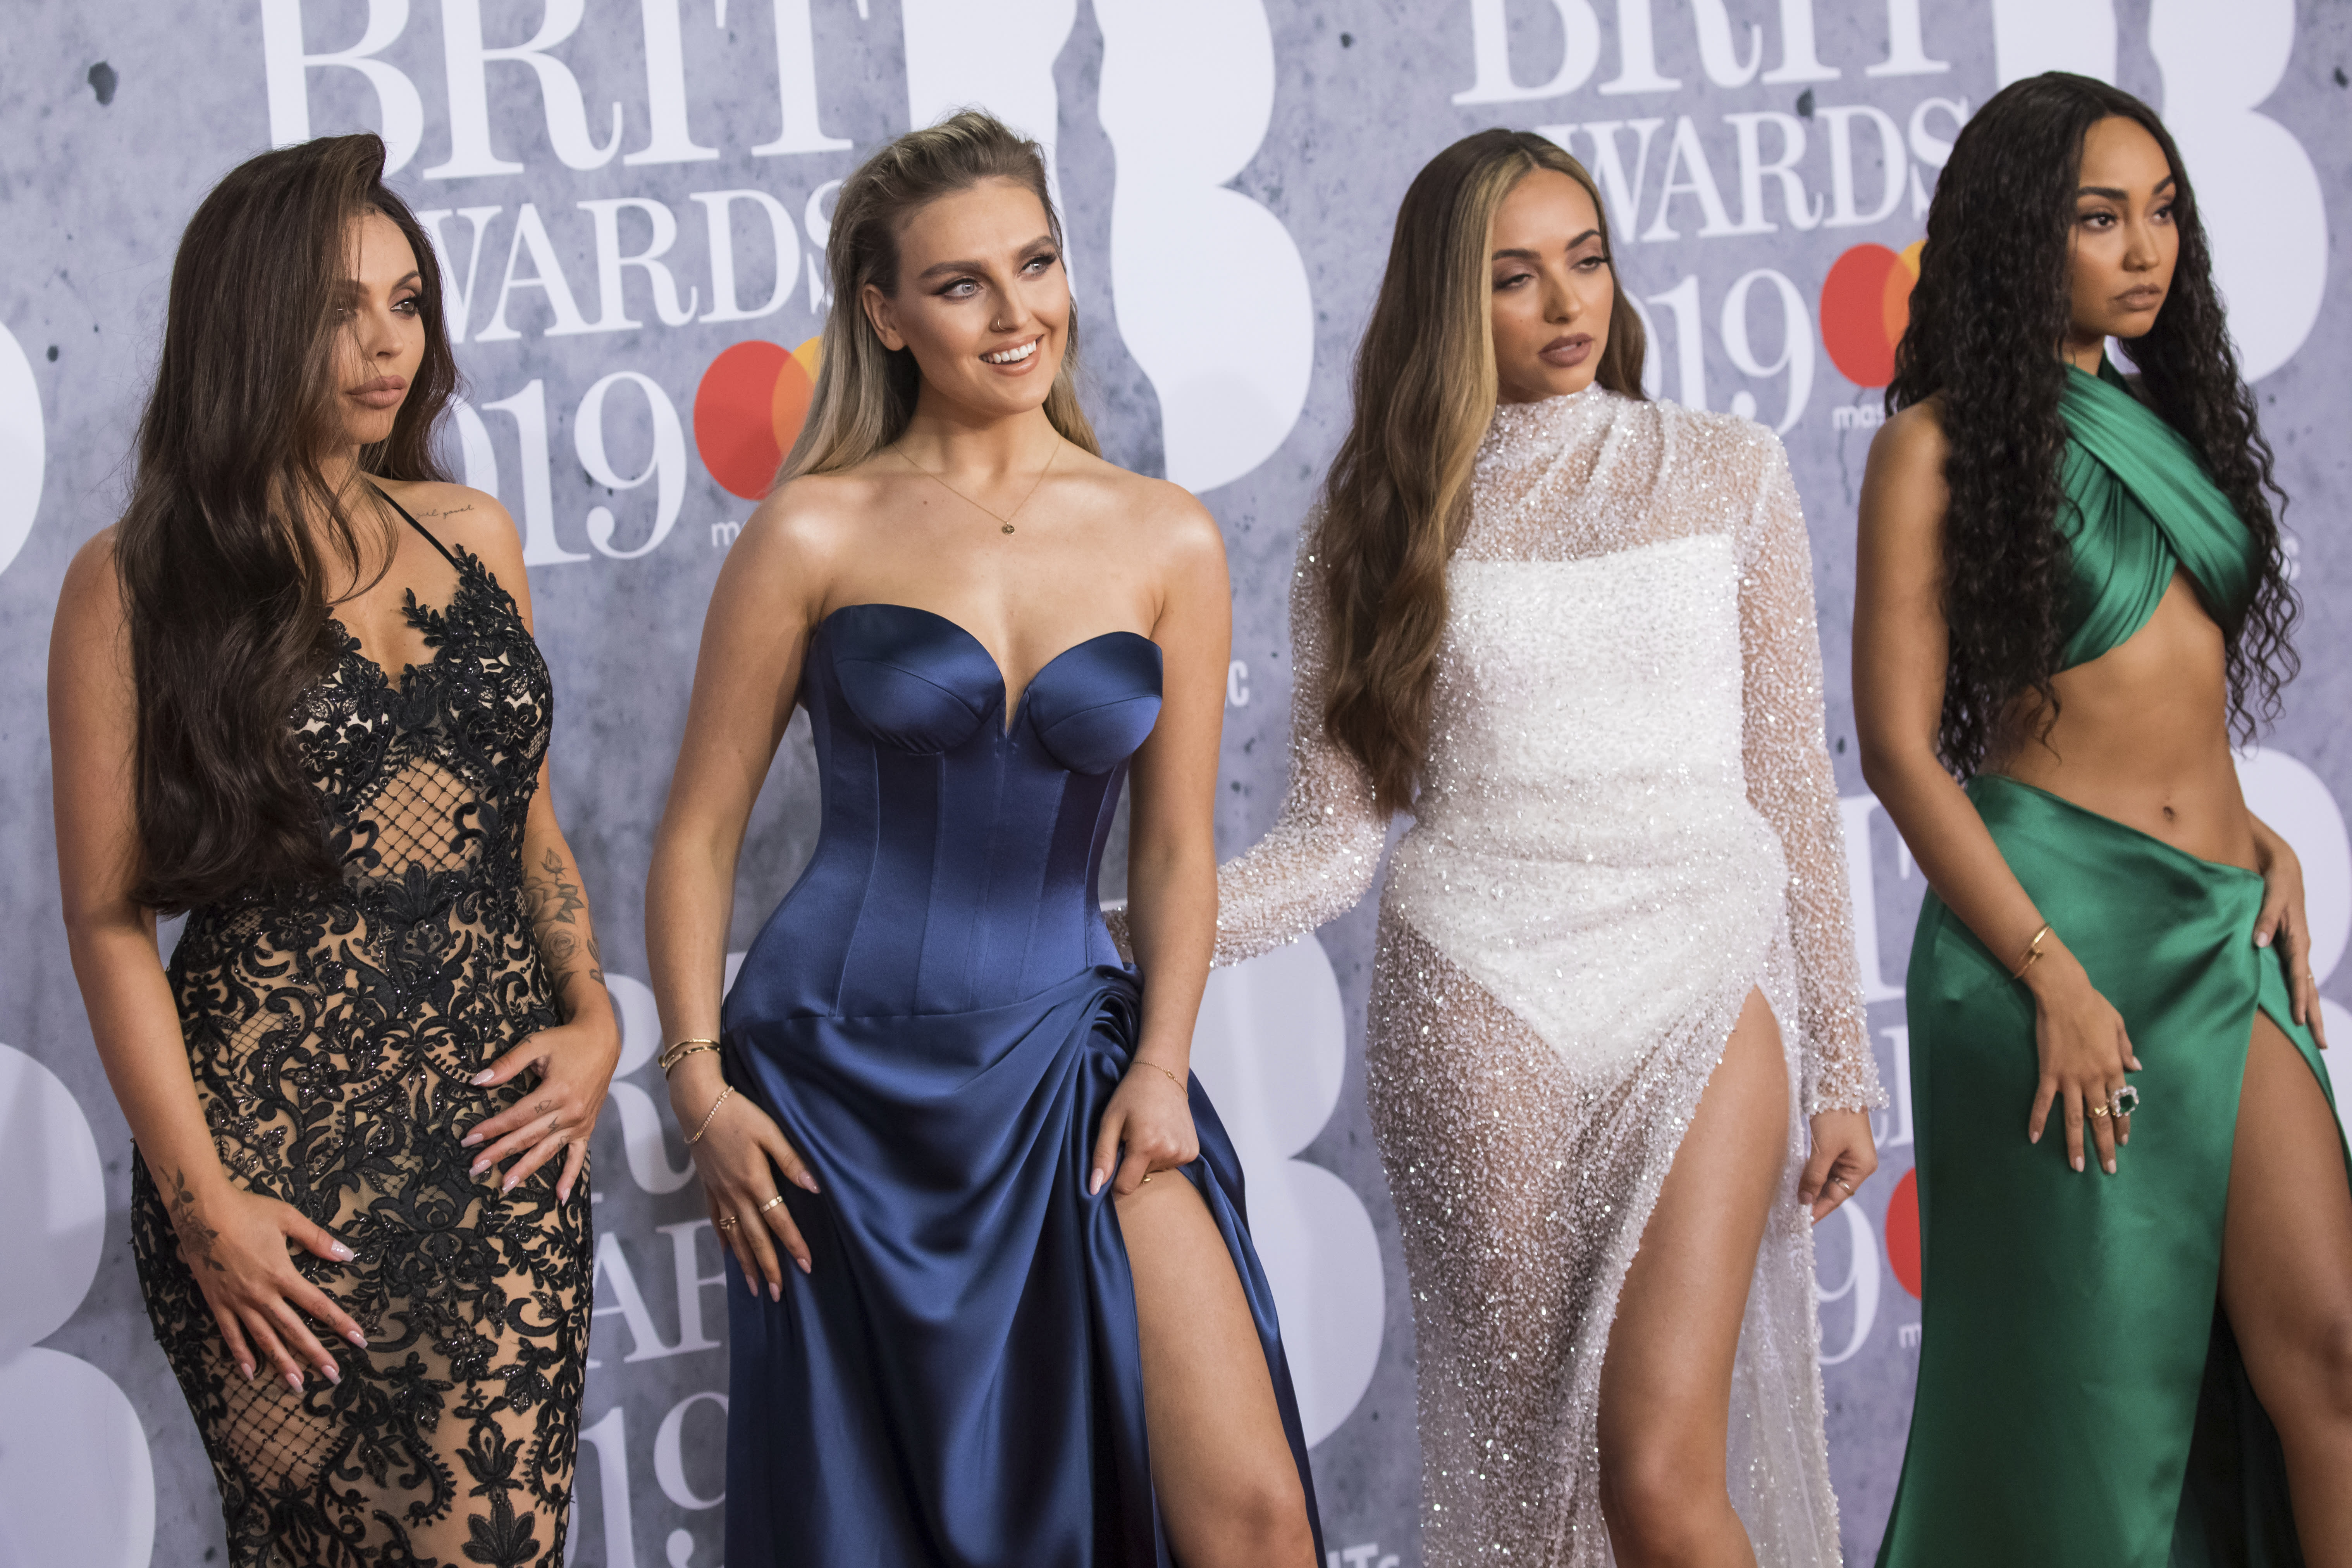 Jesy Nelson, from left, Perrie Edwards, Jade Thirlwall and Leigh-Anne Pinnock from the band Little Mix pose for photographers upon arrival at the Brit Awards in London, Wednesday, Feb. 20, 2019. (Photo by Vianney Le Caer/Invision/AP)